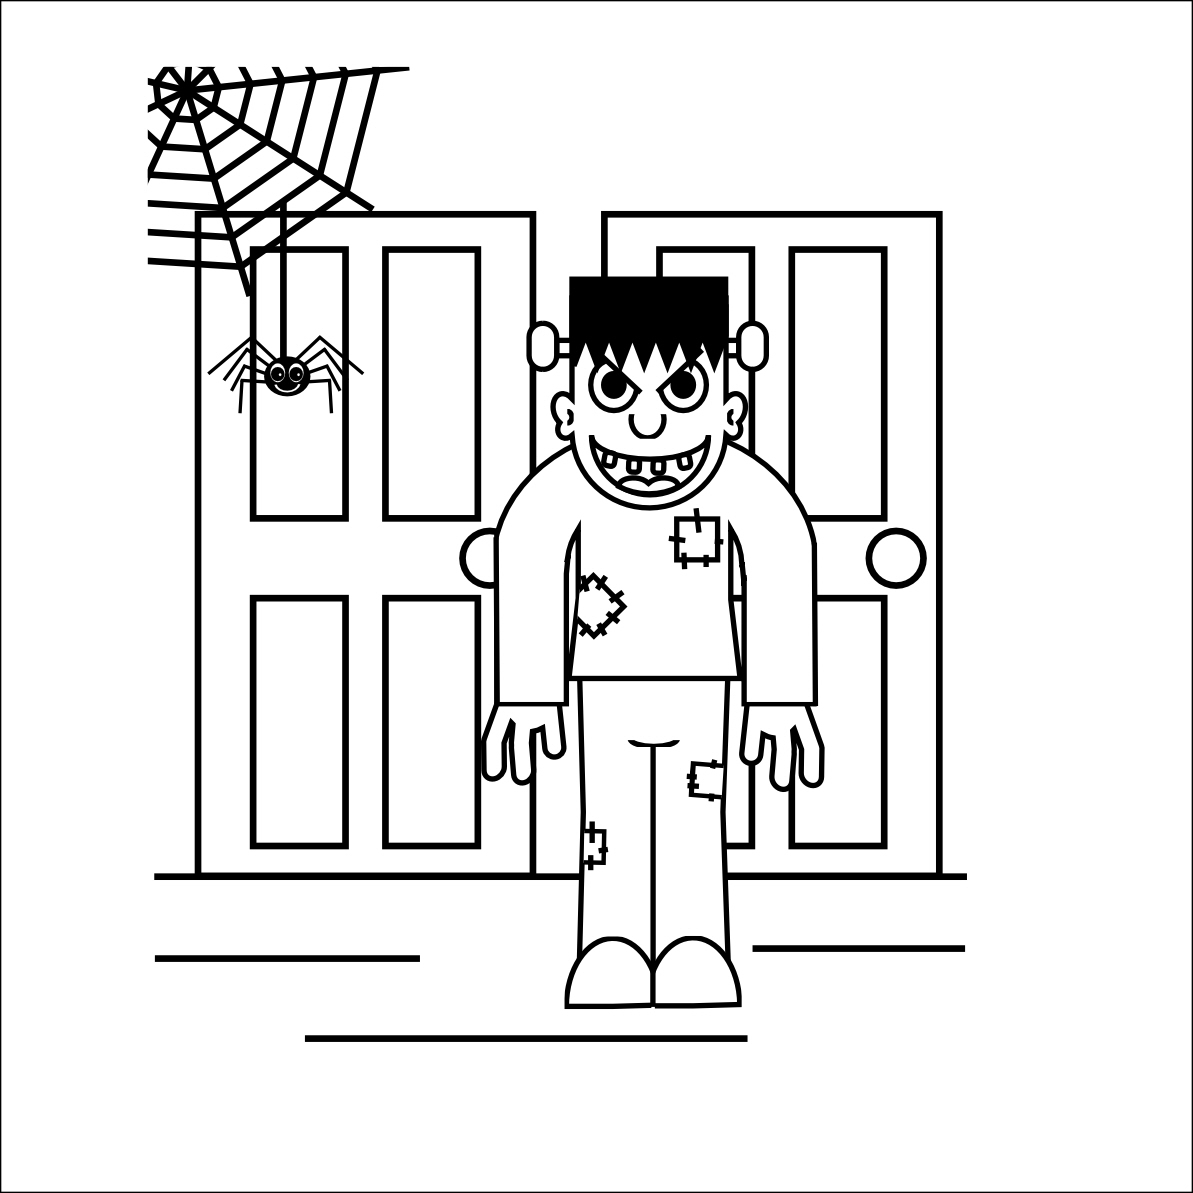 coloring pages 28 october attack - photo#9